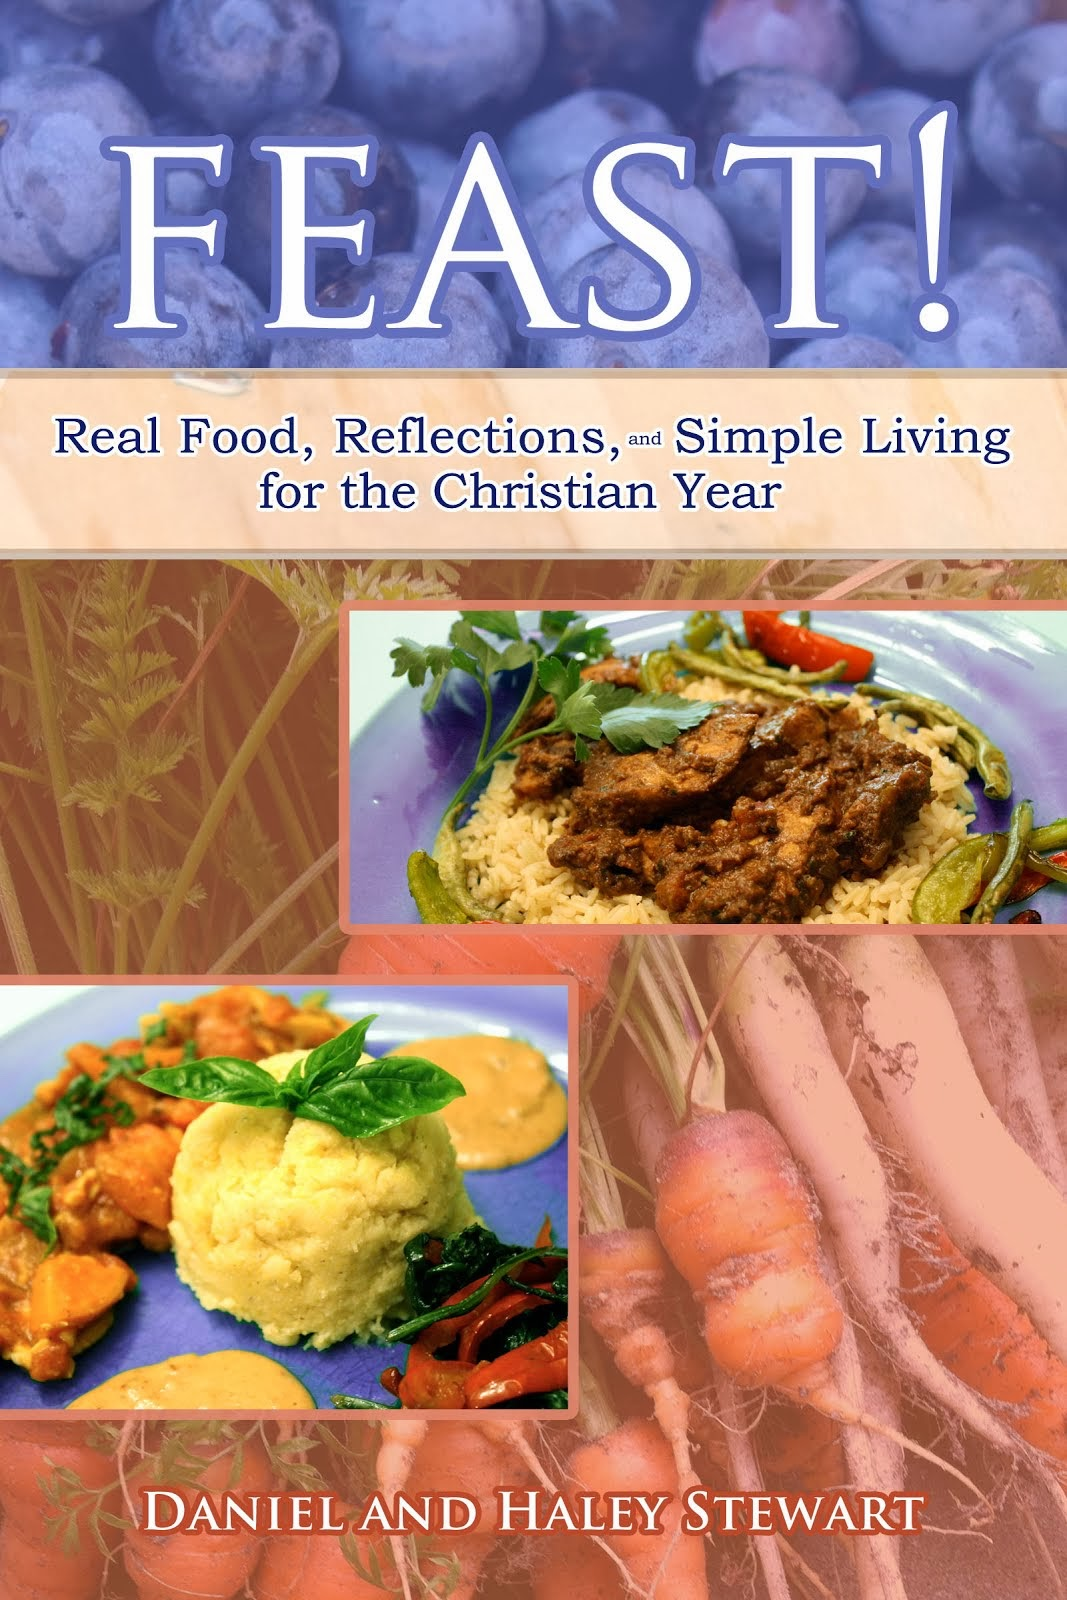 Feast! Real Food, Reflections, and Simple Living for the Christian Year